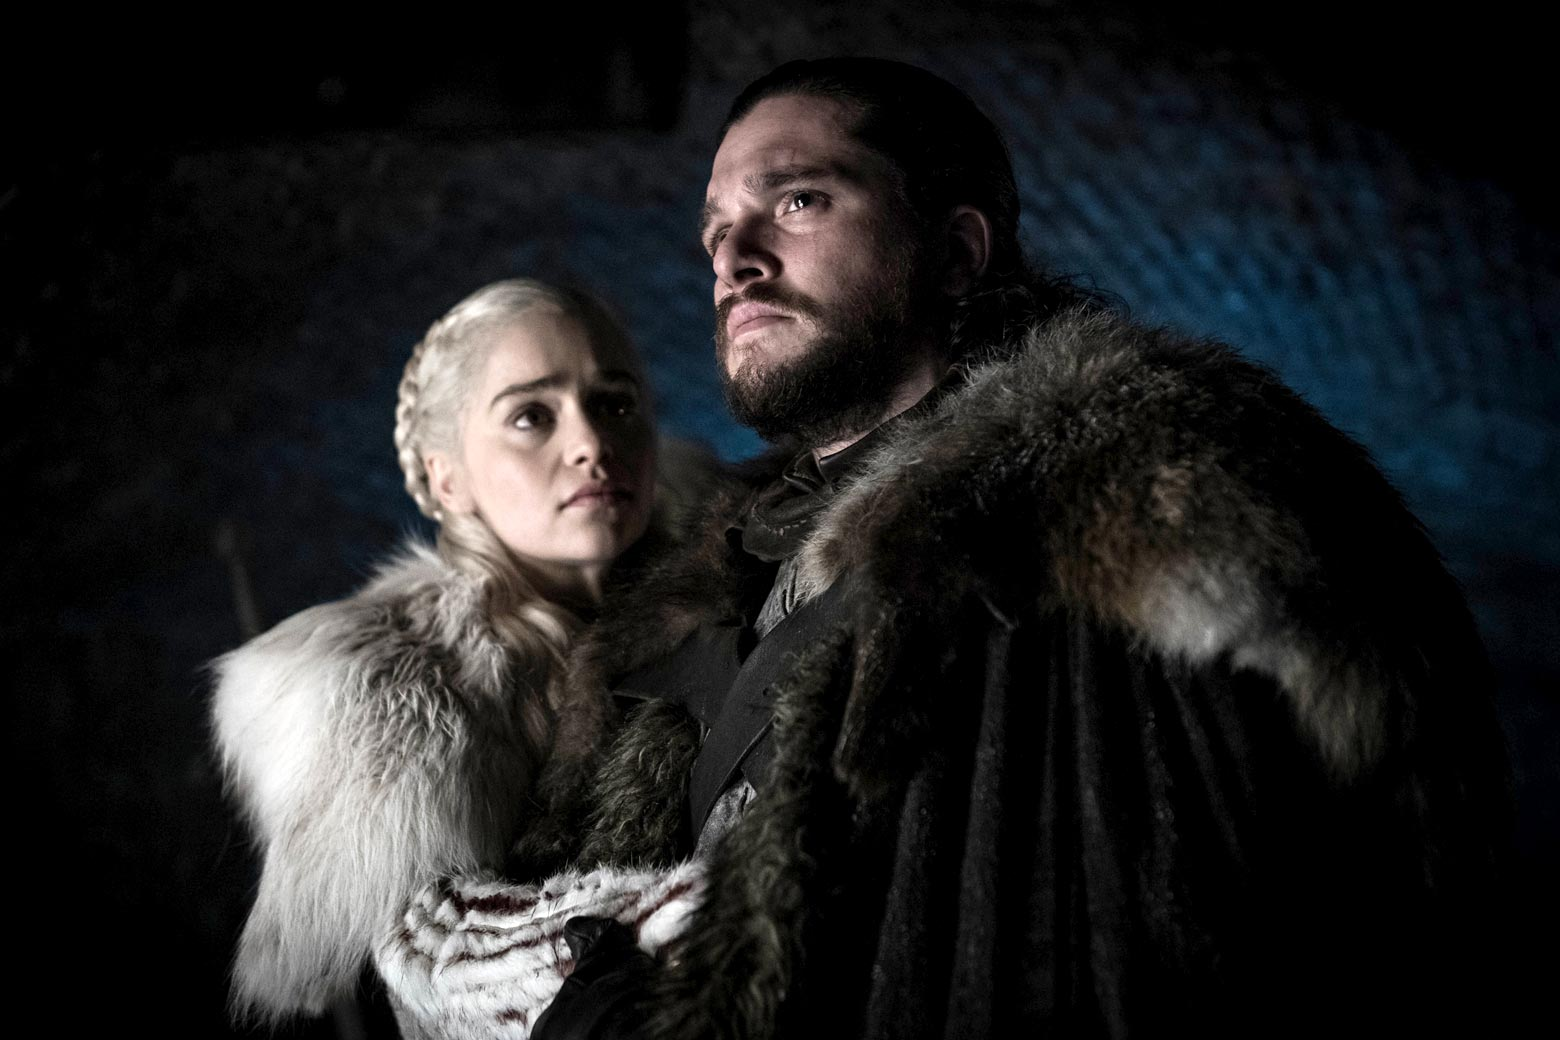 Emilia Clarke as Daenerys Targaryen, Kit Harington as Jon Snow in Game of Thrones Season 8, Episode 2.